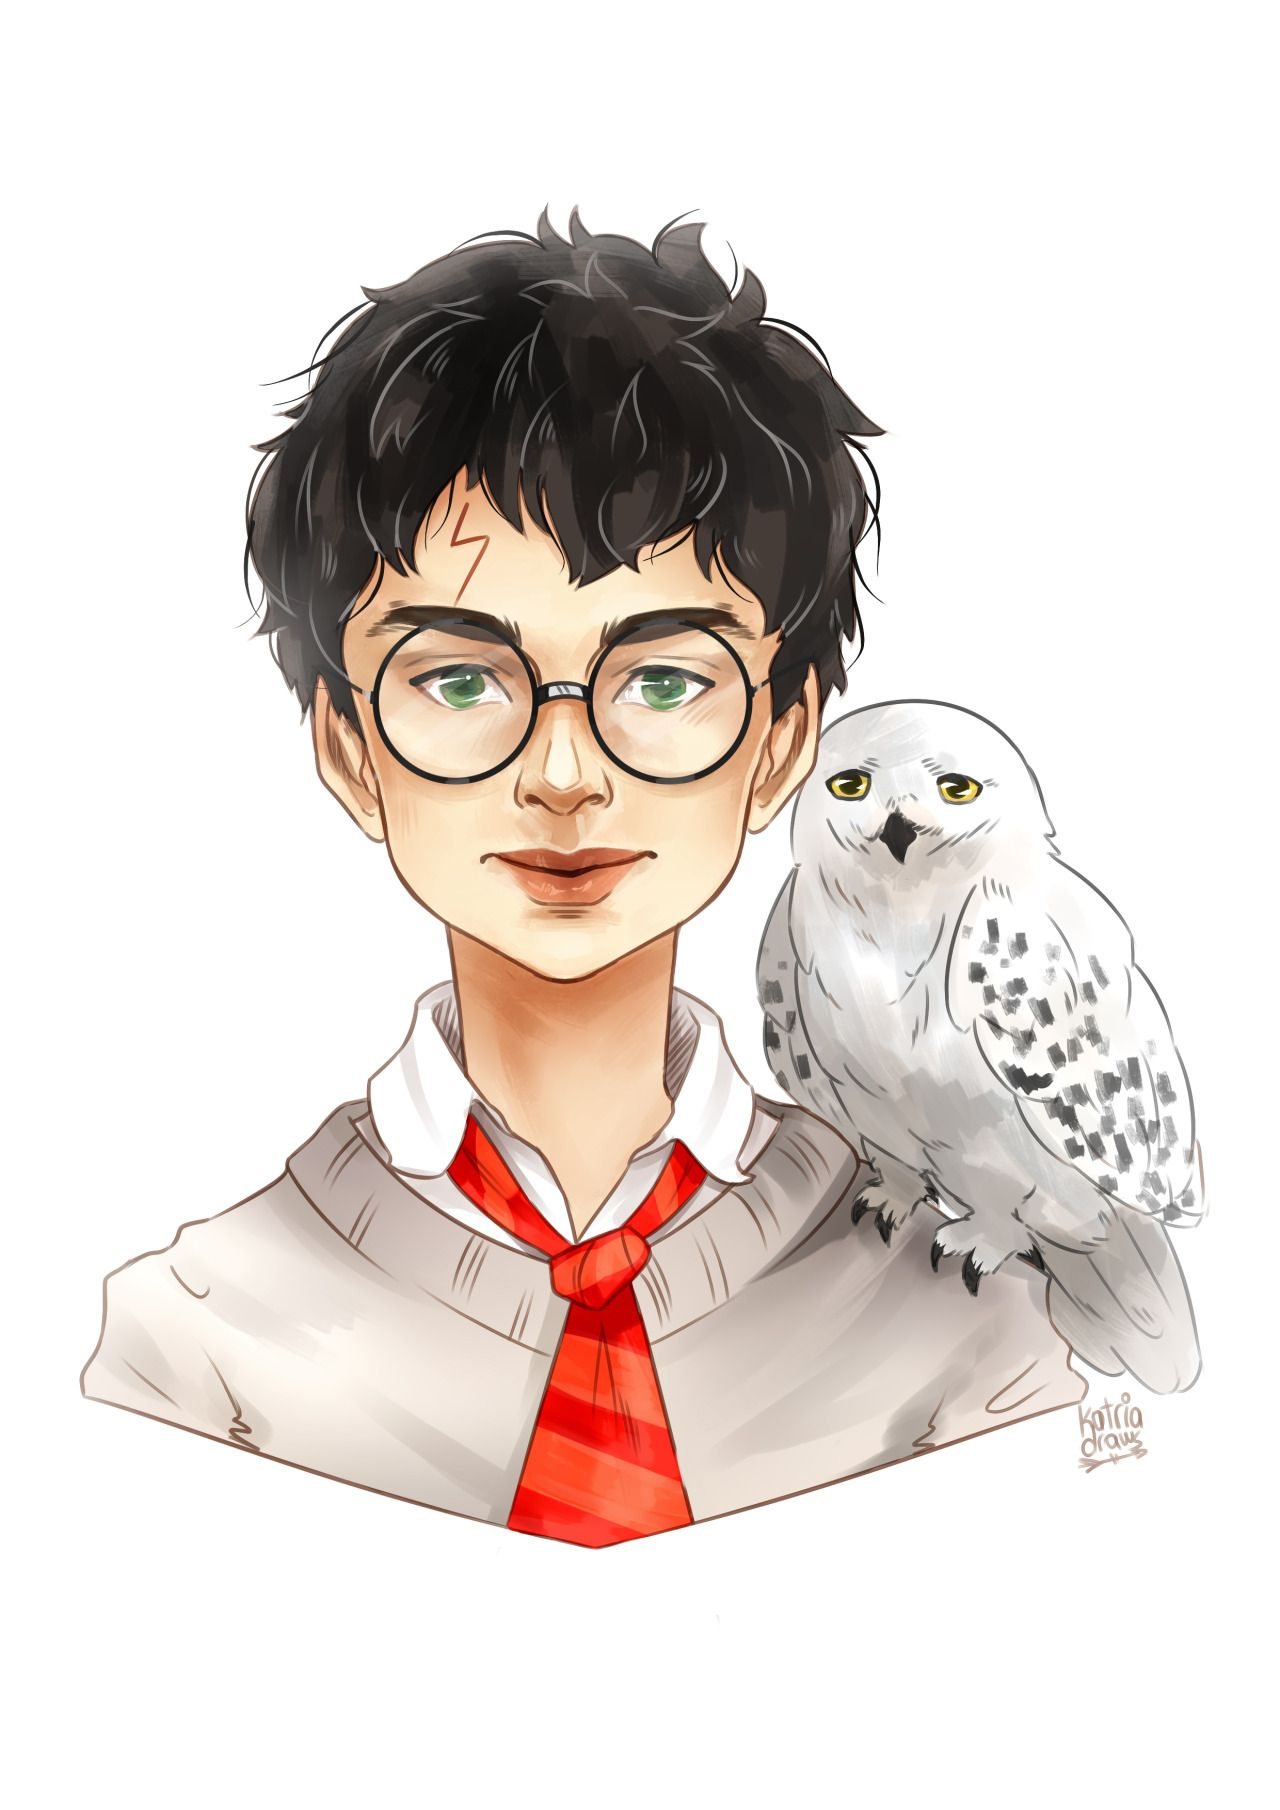 Smol Harry From The Books